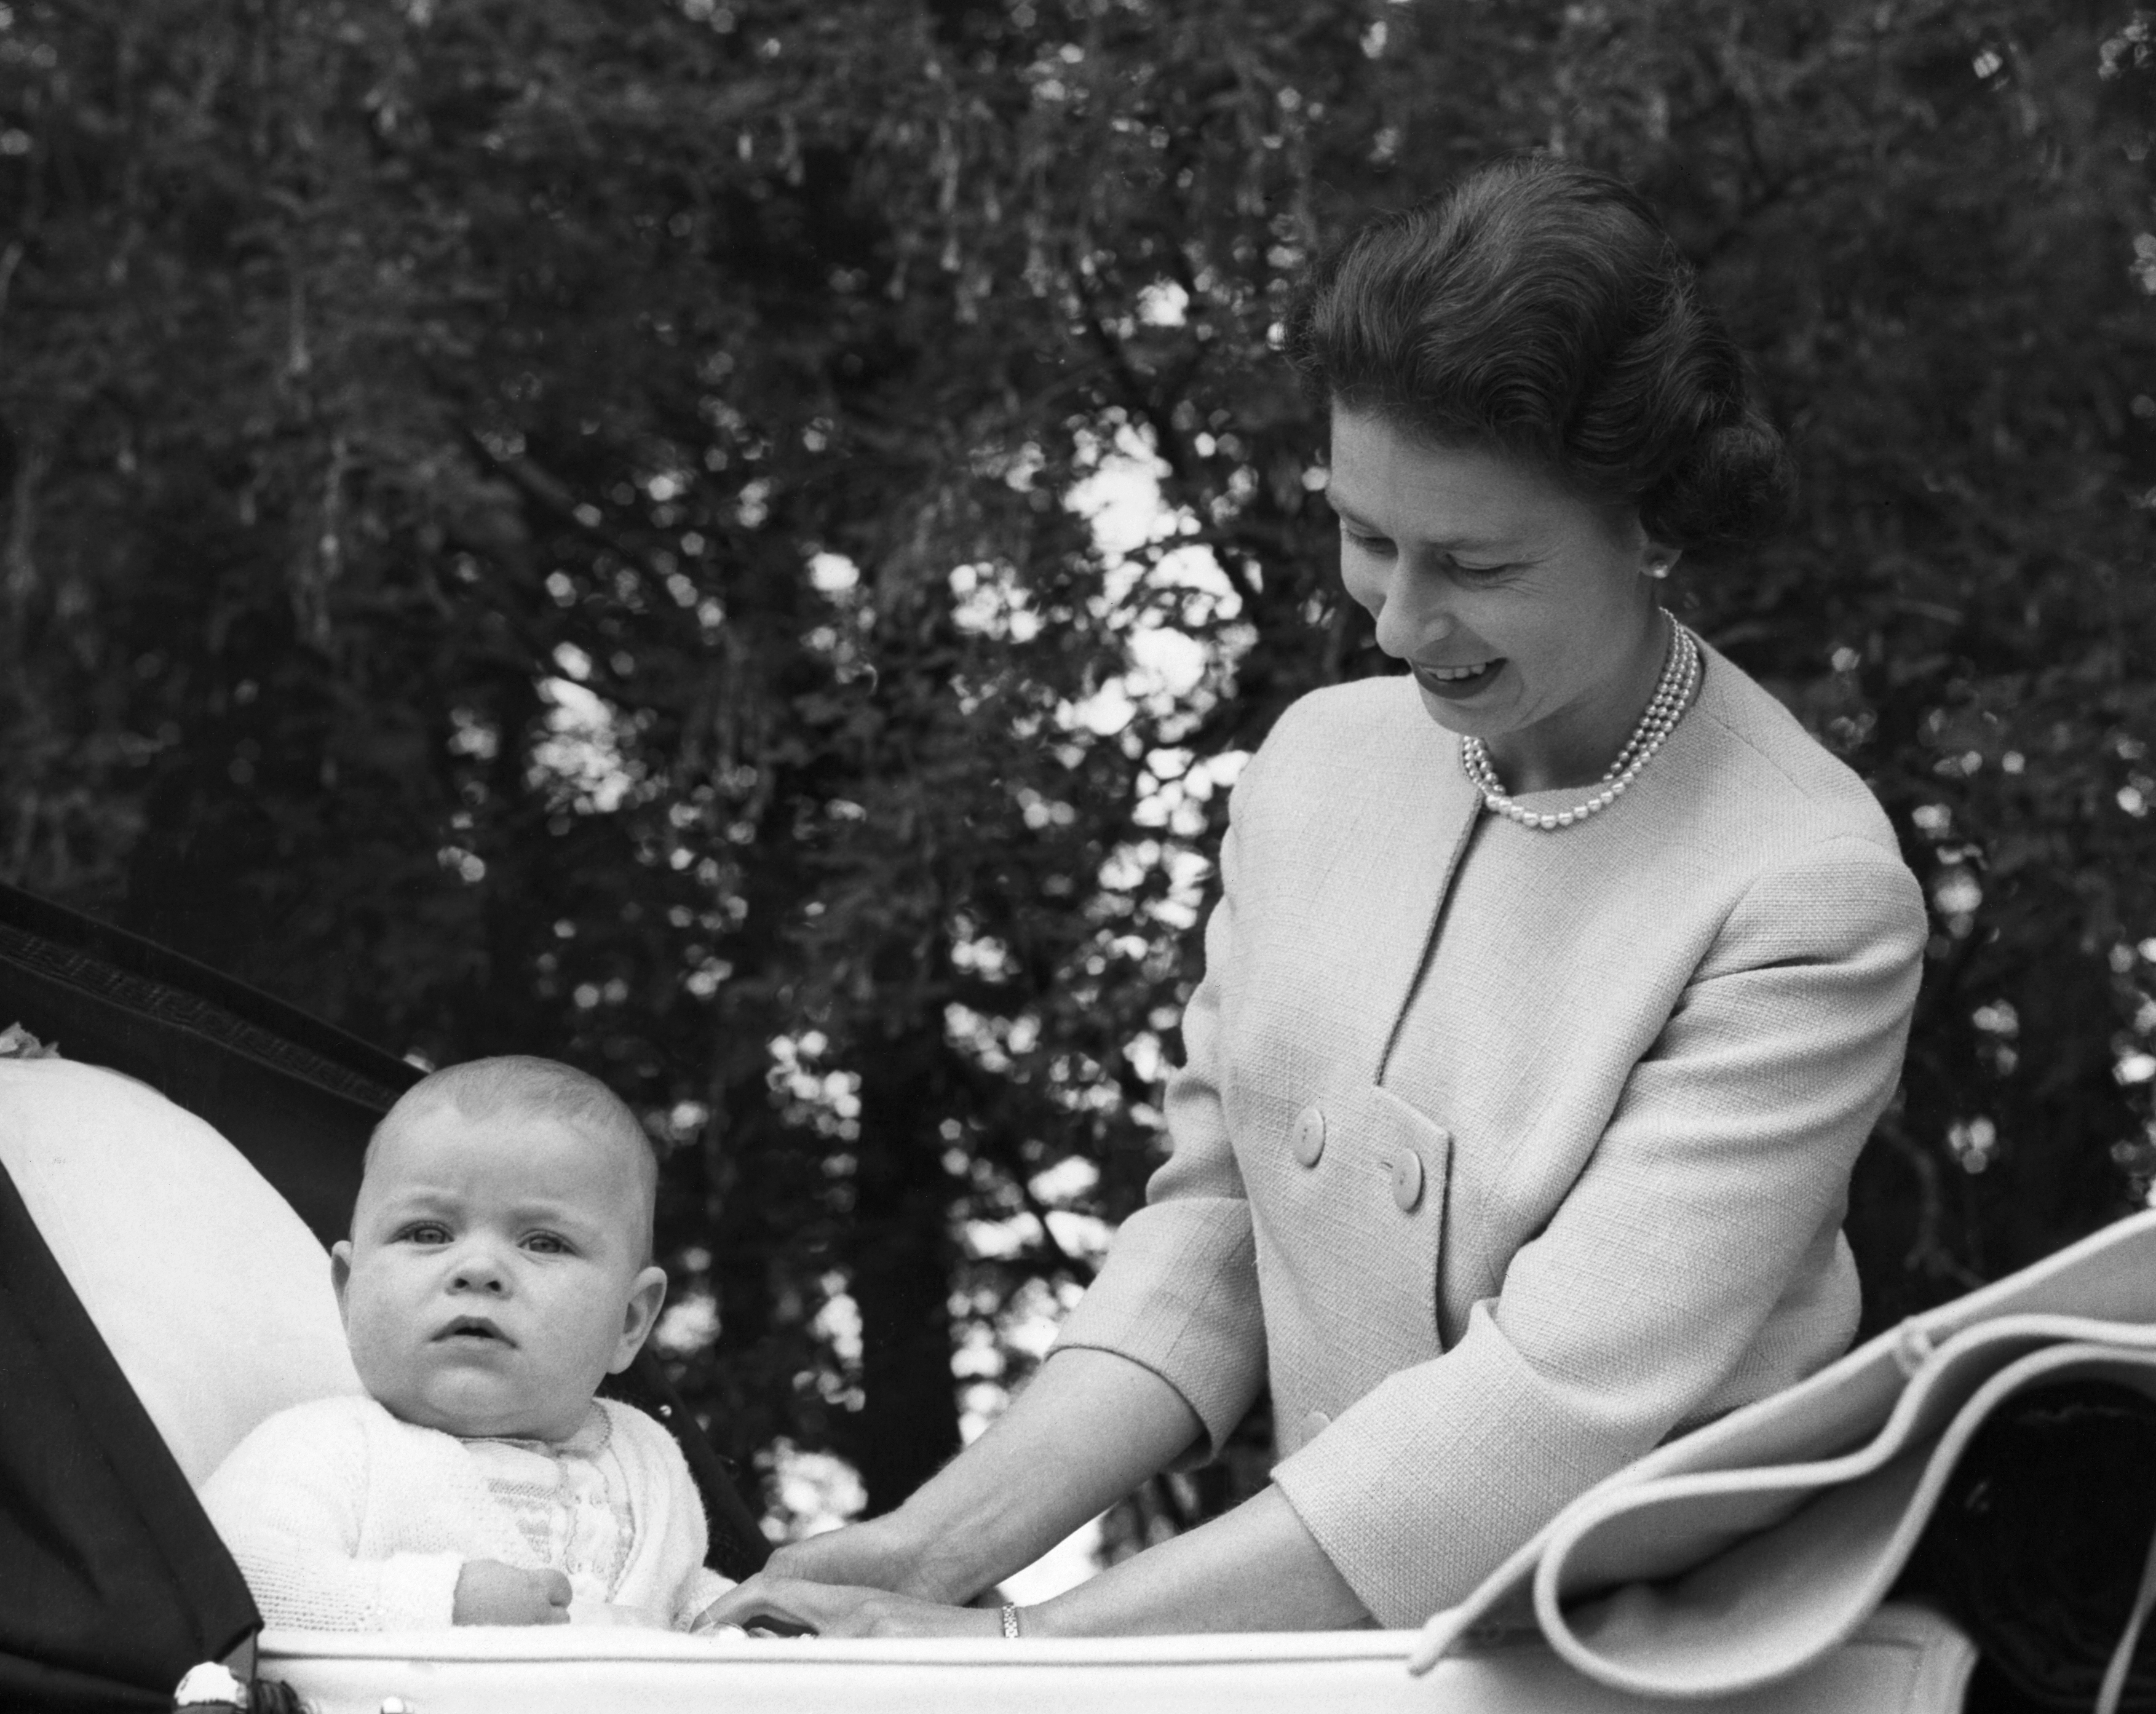 Queen Elizabeth with her second son Prince Andrew, in his pram at Balmoral Castle, 1961. (Photo by © Hulton-Deutsch Collection/CORBIS/Corbis via Getty Images)